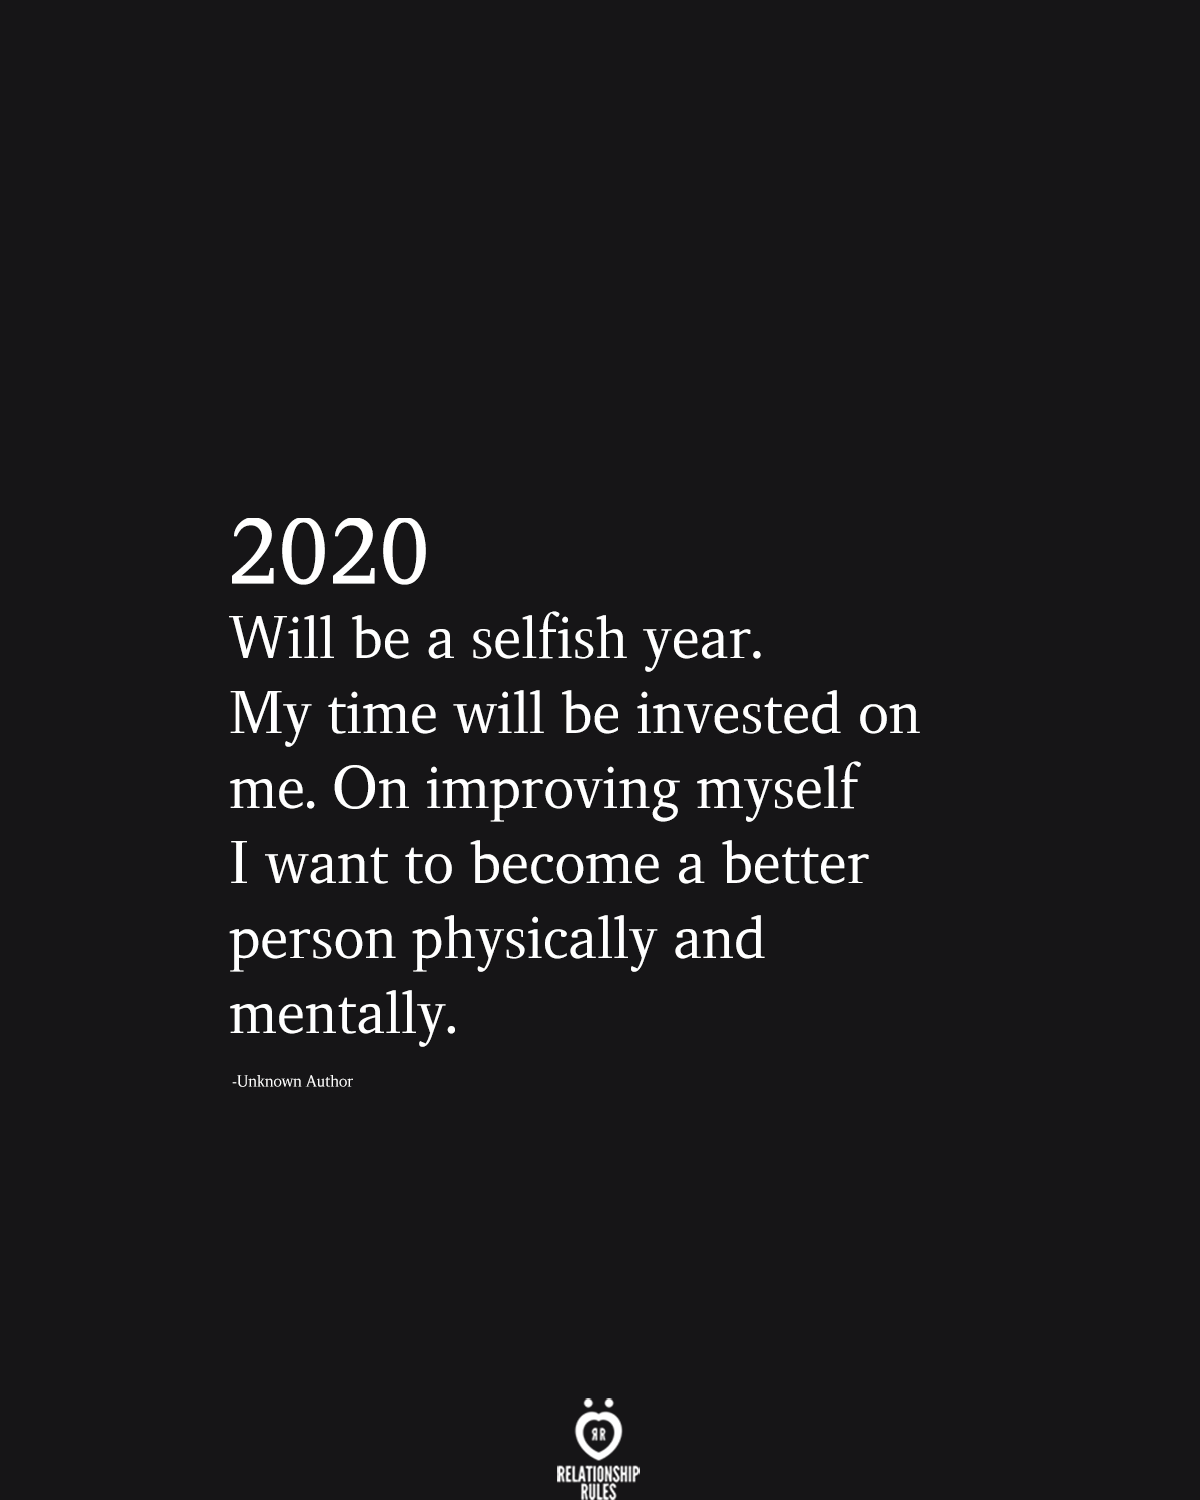 2020 Will Be A Selfish Year. My Time Will Be Invested On Me #2020quotes